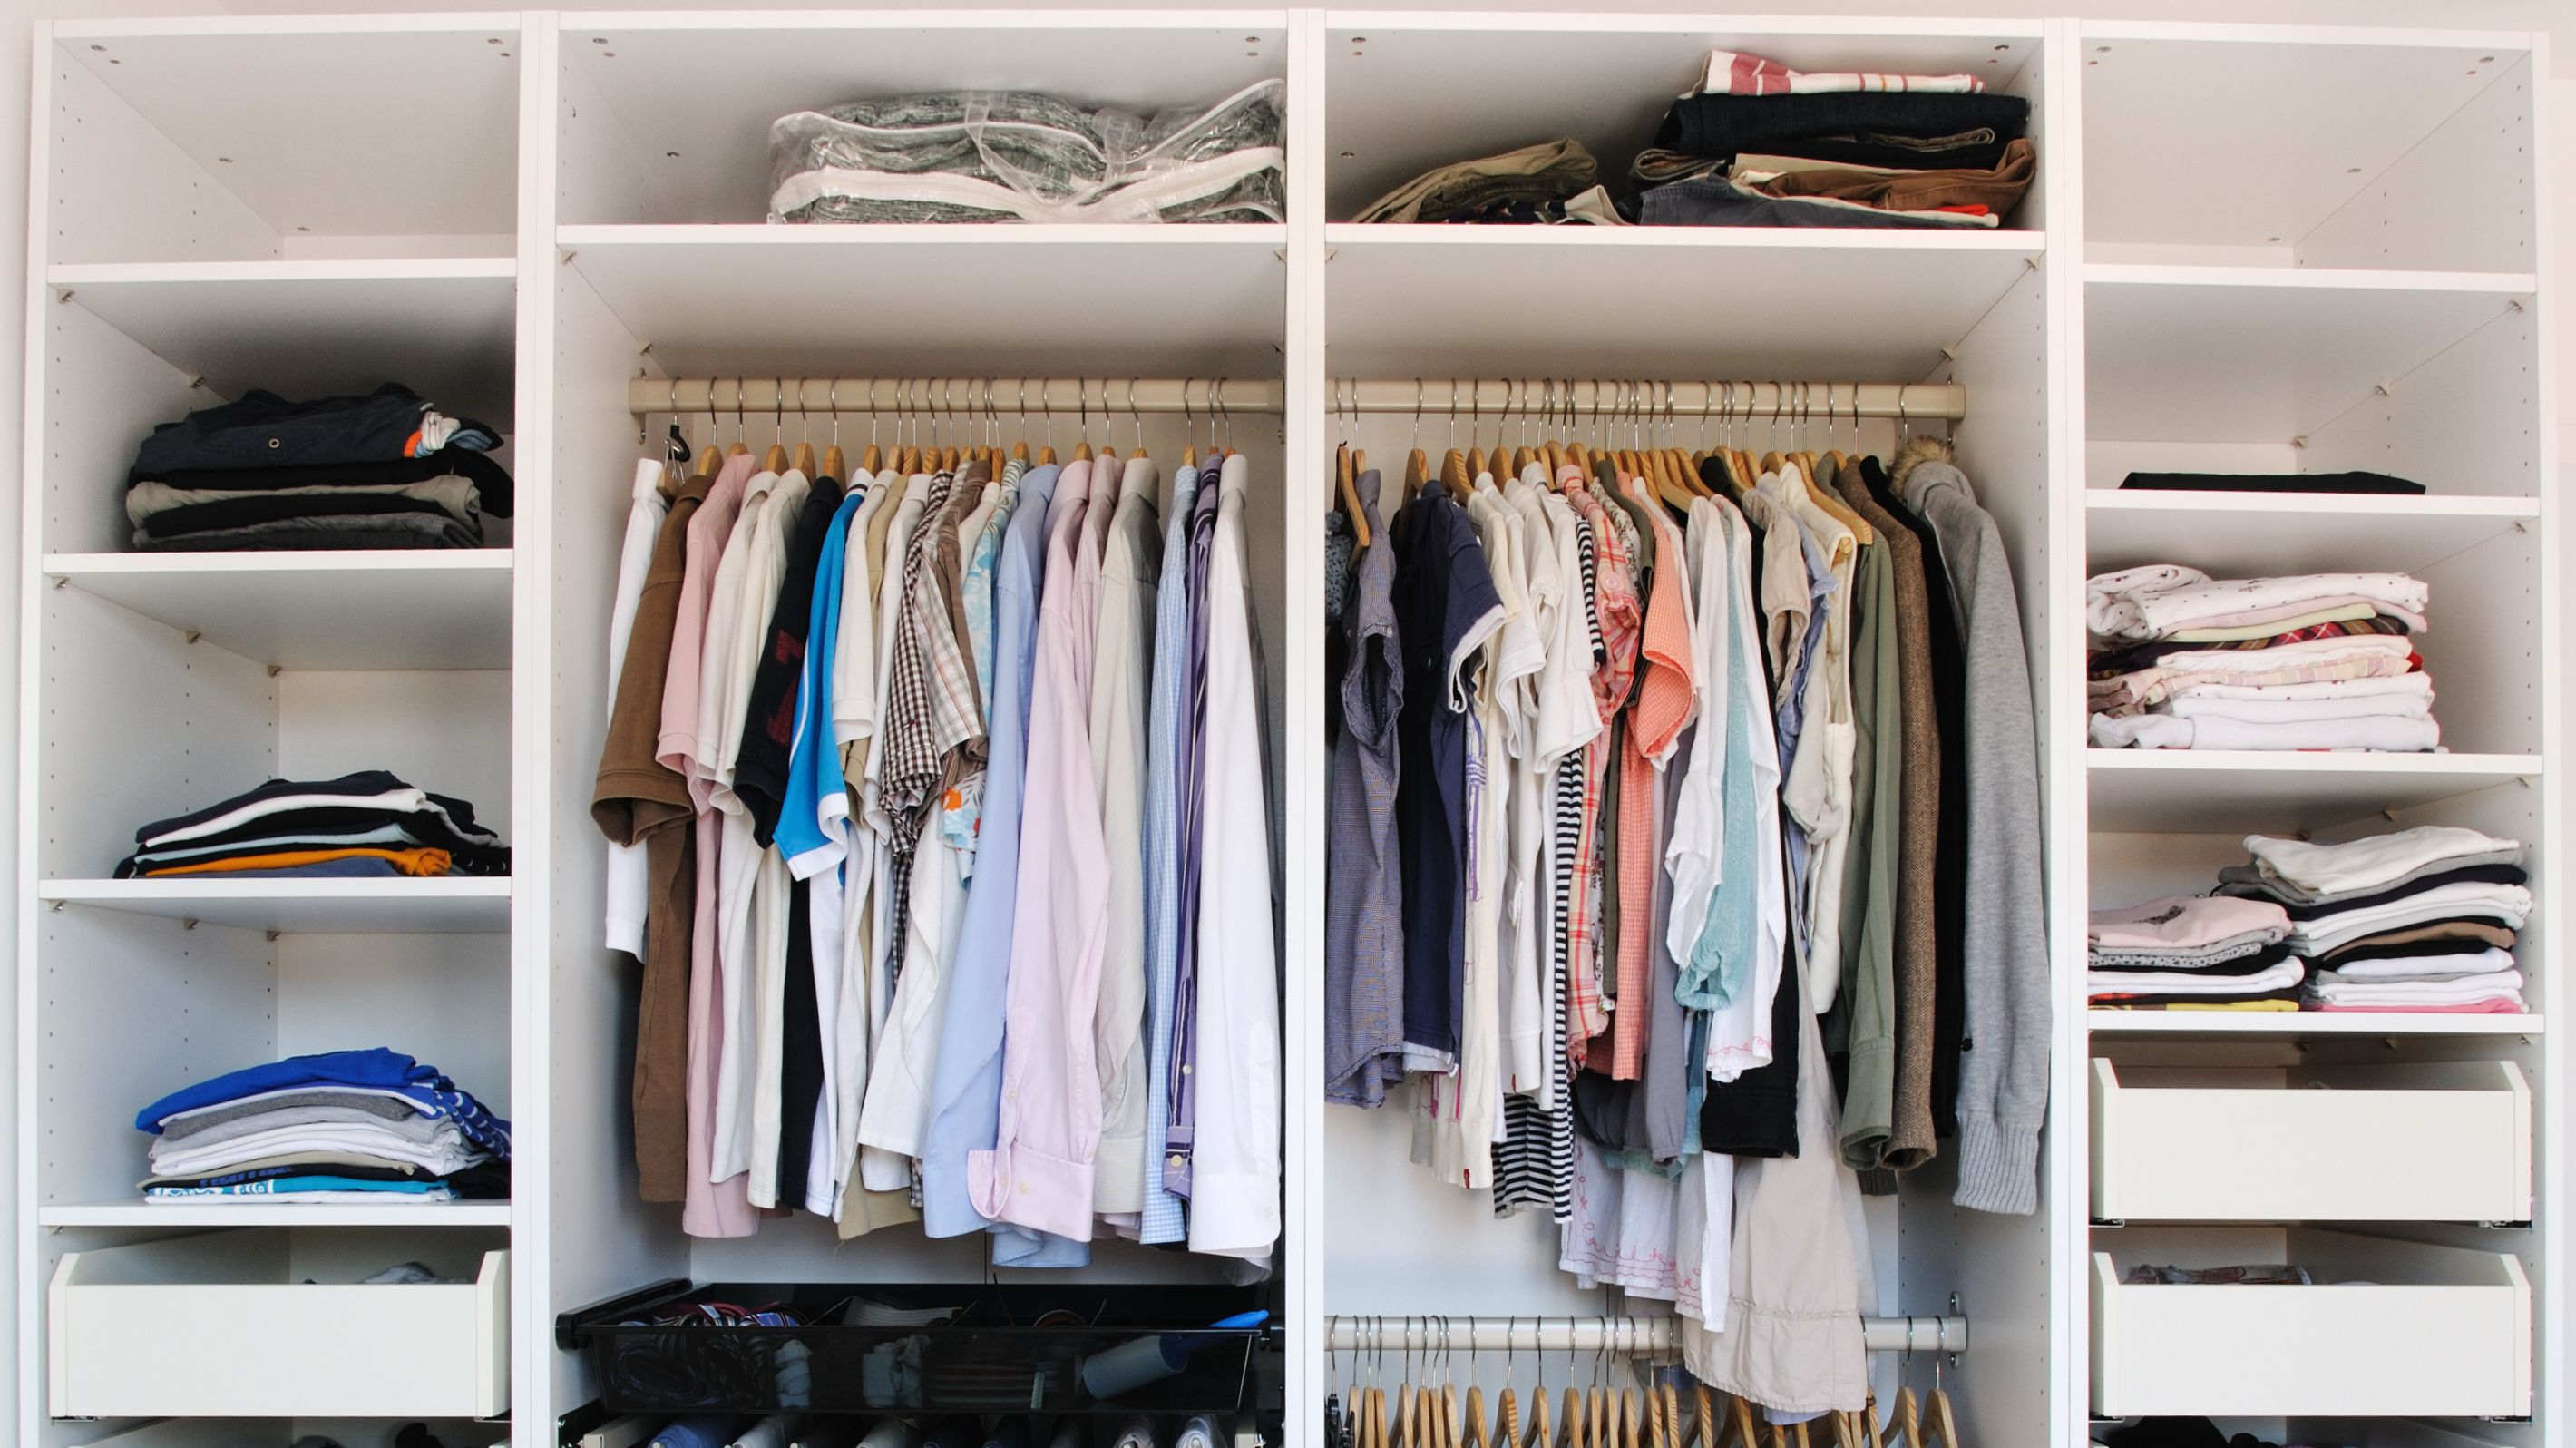 24 Organizing Products to Make Smarter Use of Your Closet Space